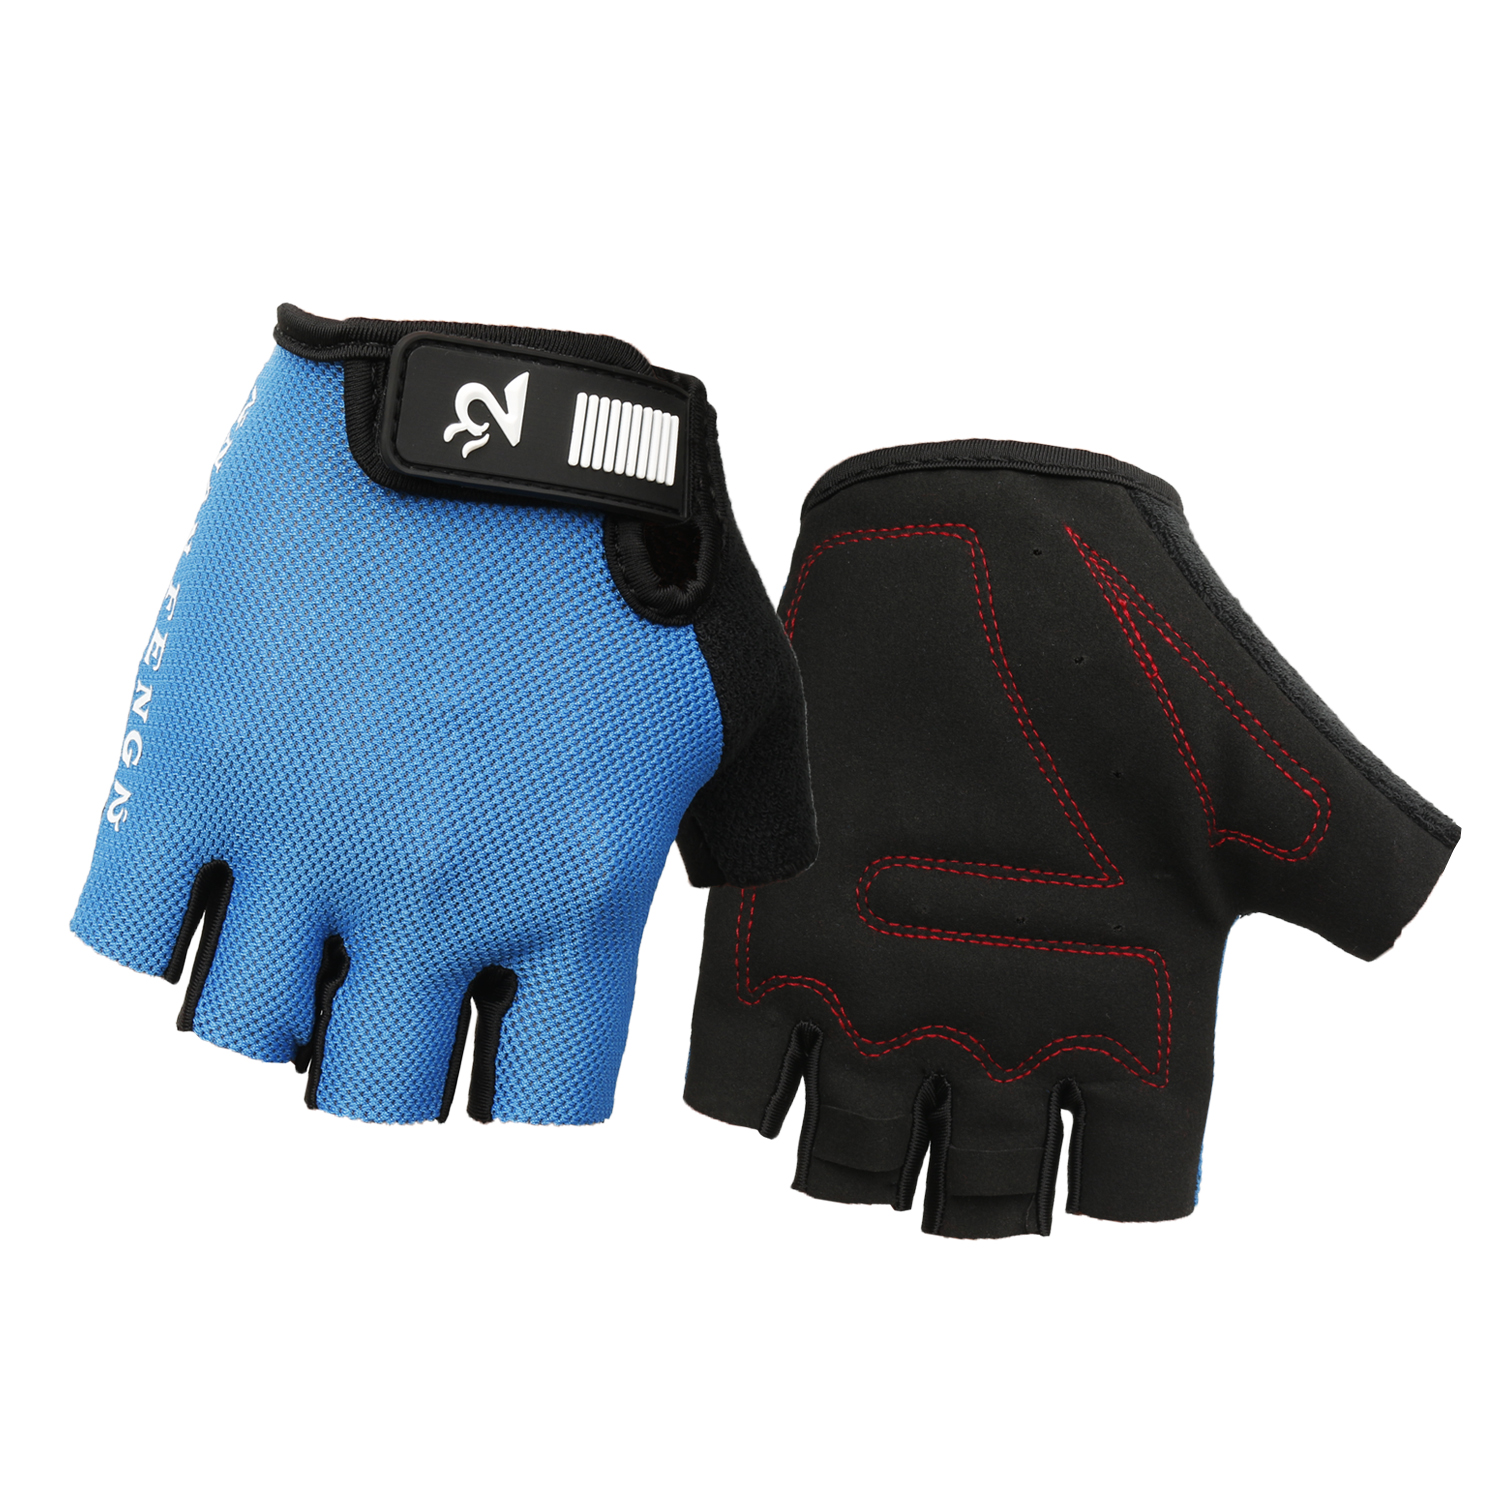 Fingerless gloves for guitarists - Half Finger Cycling Gloves Fingerless For Bicycle Bike Mtb Racing Gloves Without Fingers Male Female Guantes